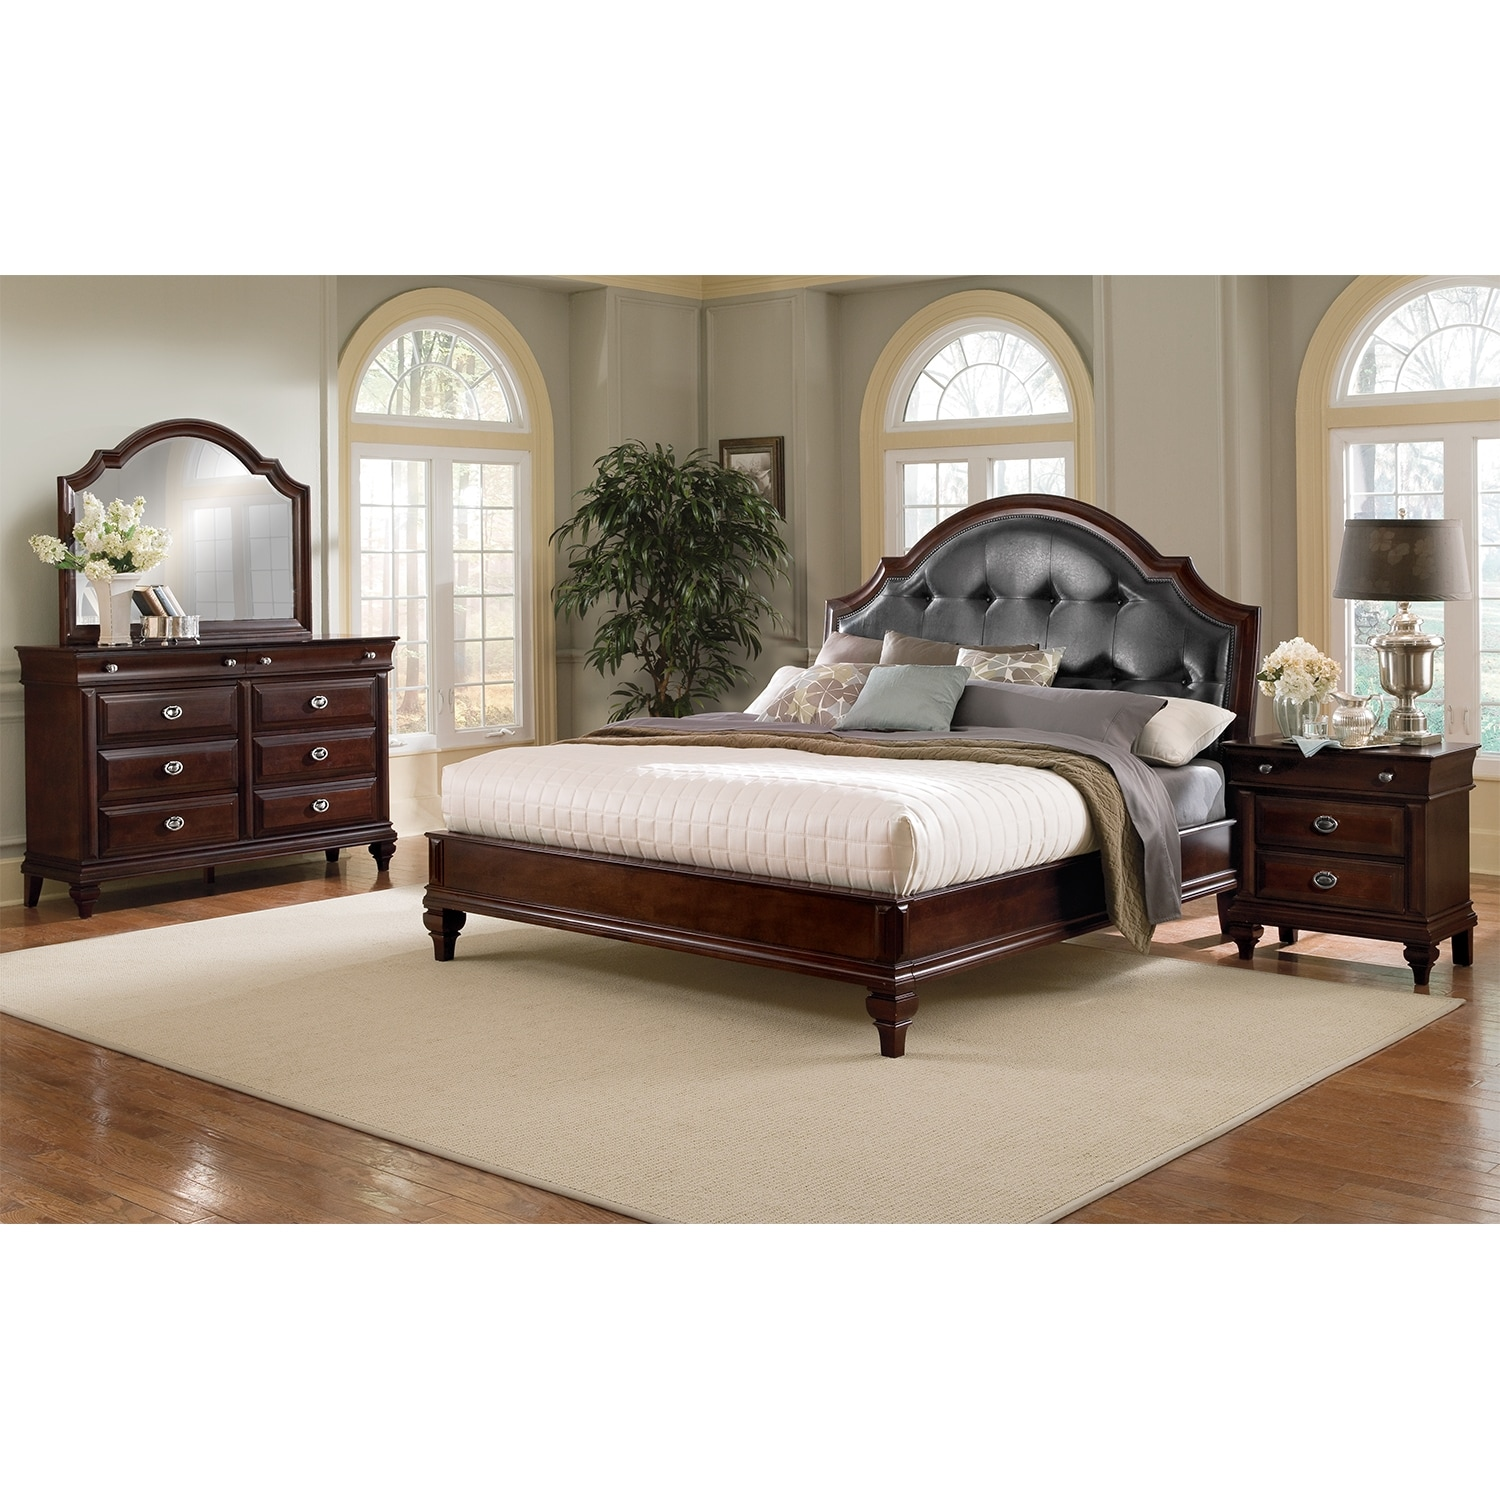 Manhattan 6 Pc. King Bedroom